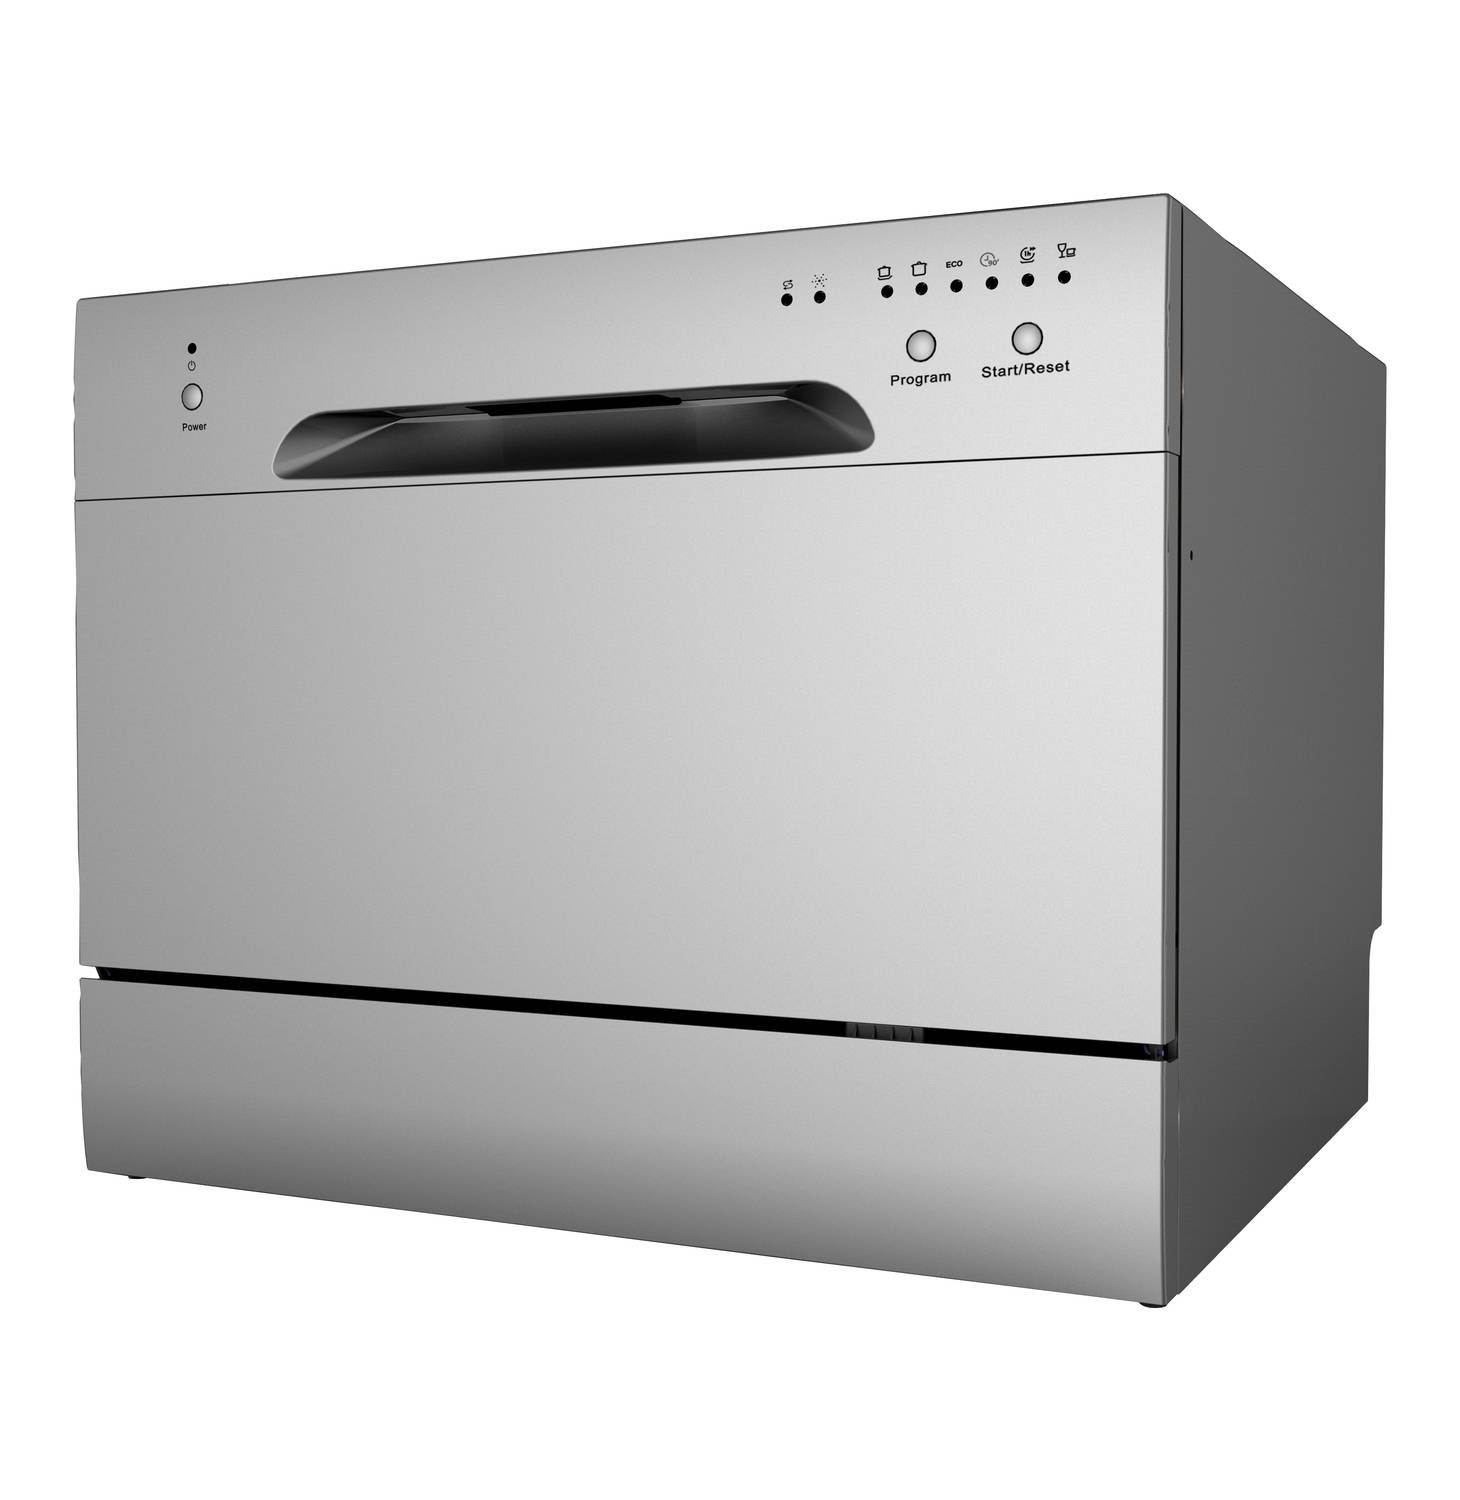 Swan 6 Place Table Top Dishwasher Silver Finish Lowest Prices